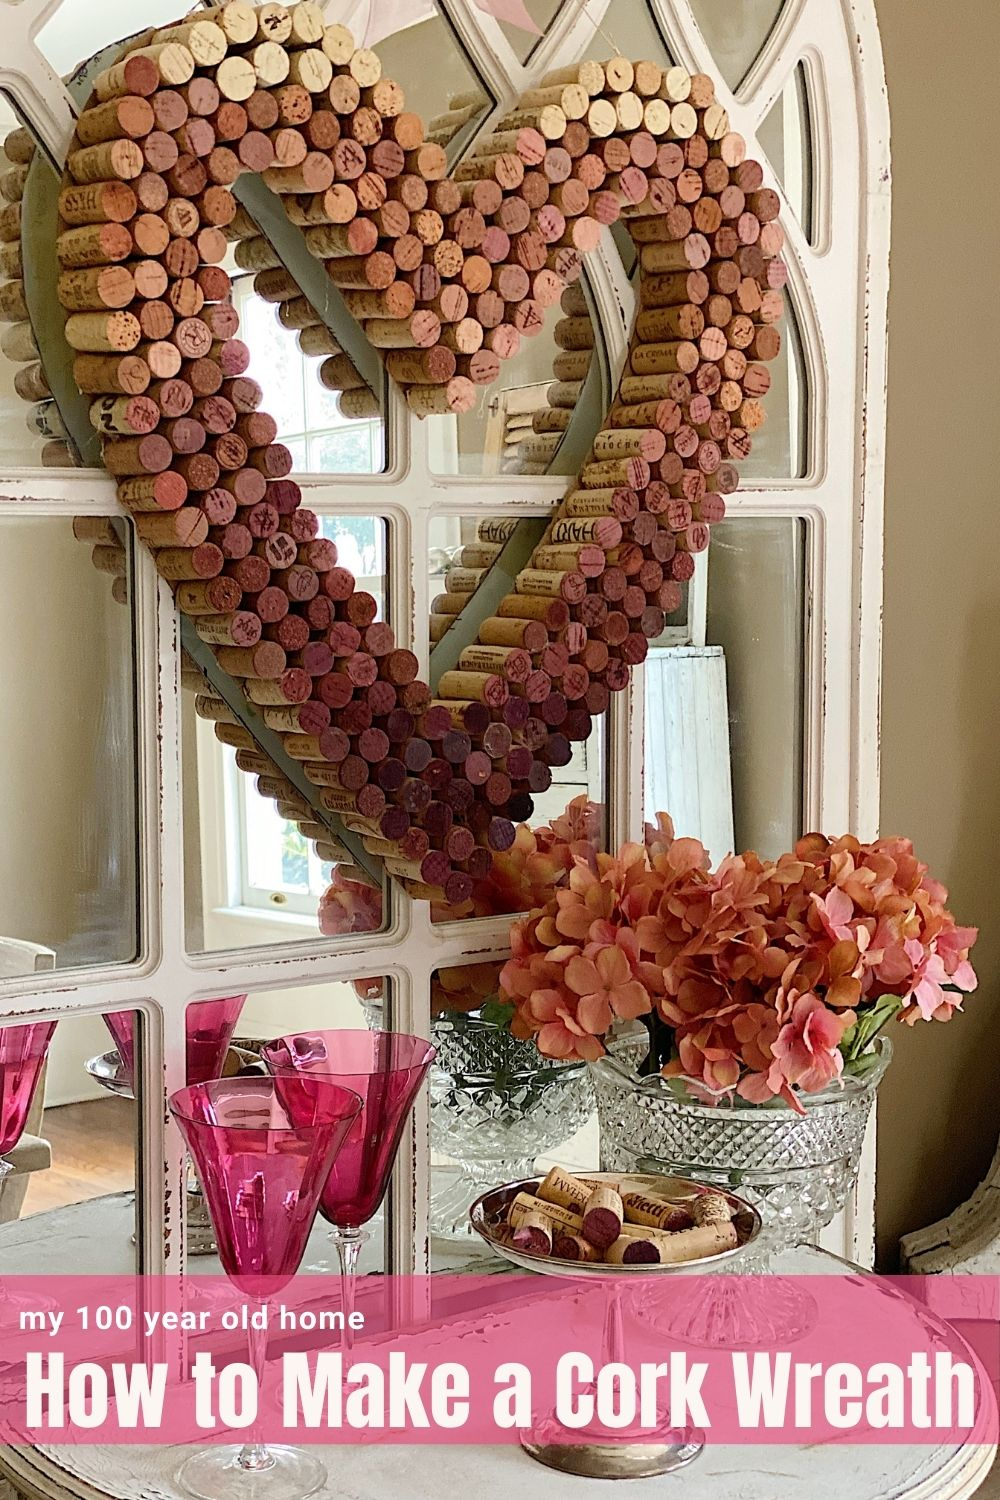 I made this Valentine's Wreath DIY from the corks of the wine our family has enjoyed this past year. It reminds me of all of the special family dinners we had at home.